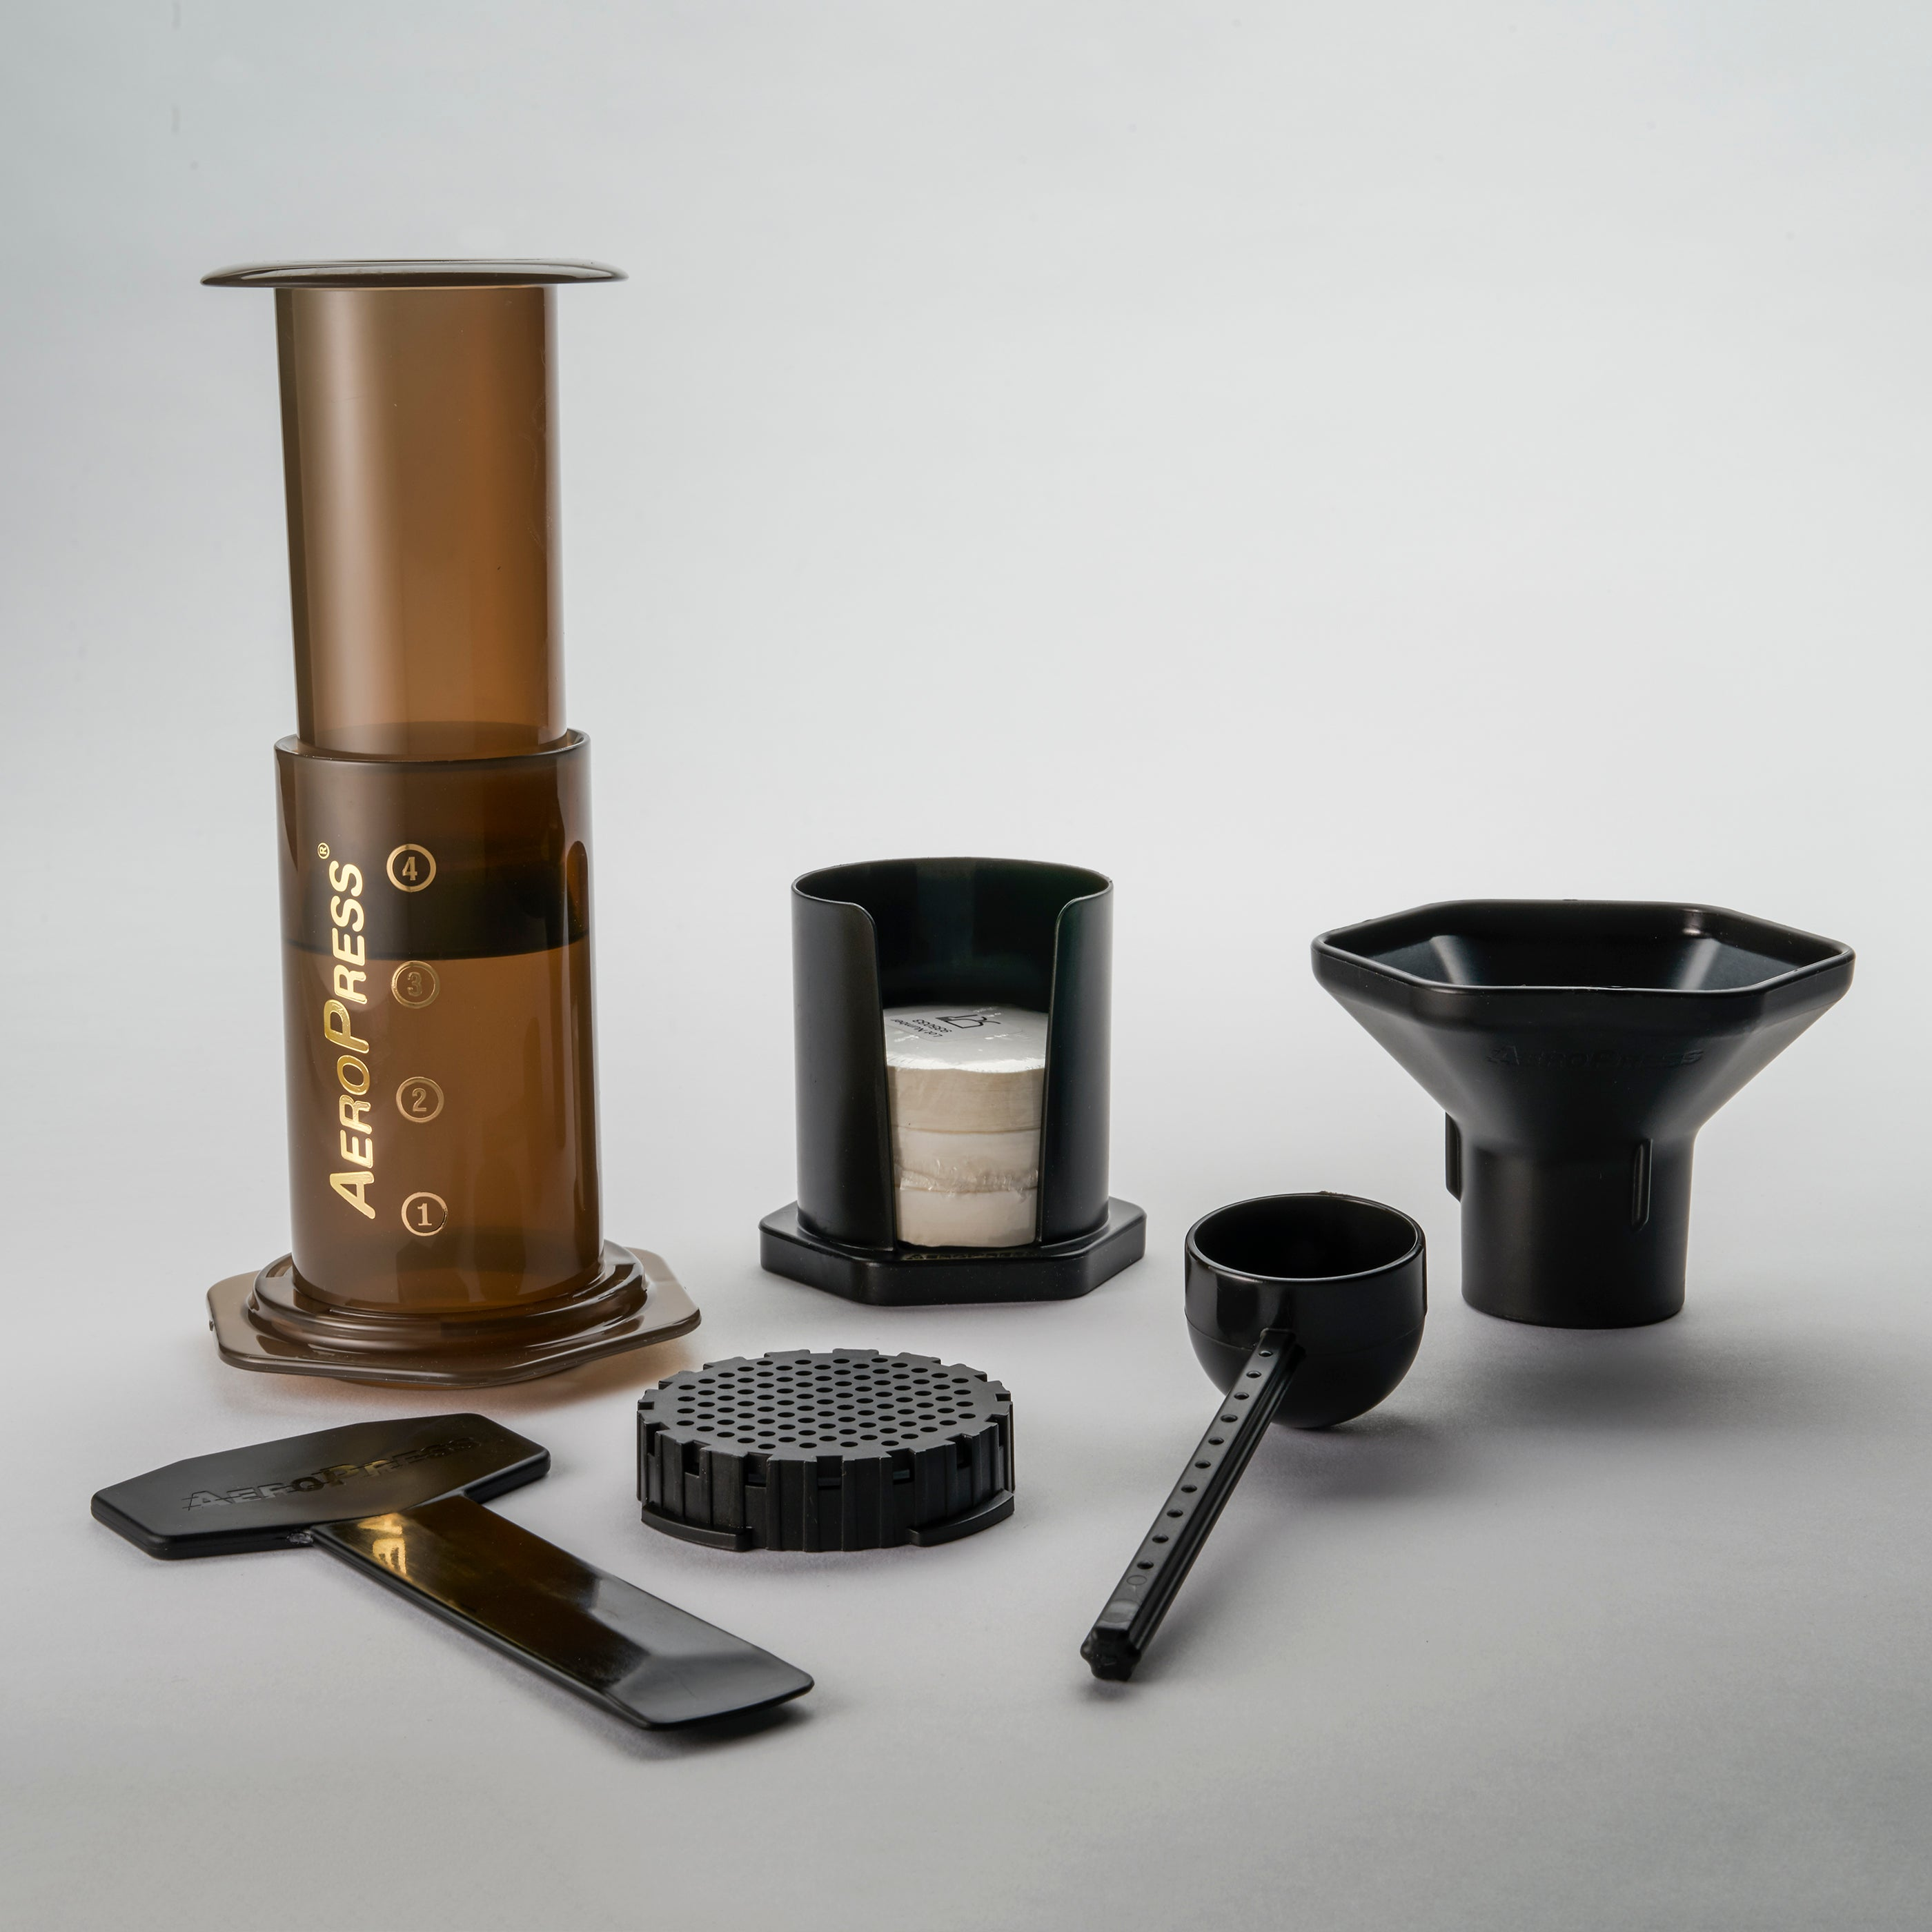 The Aeropress kit with the device, filters, funnel, strainer and scooper.